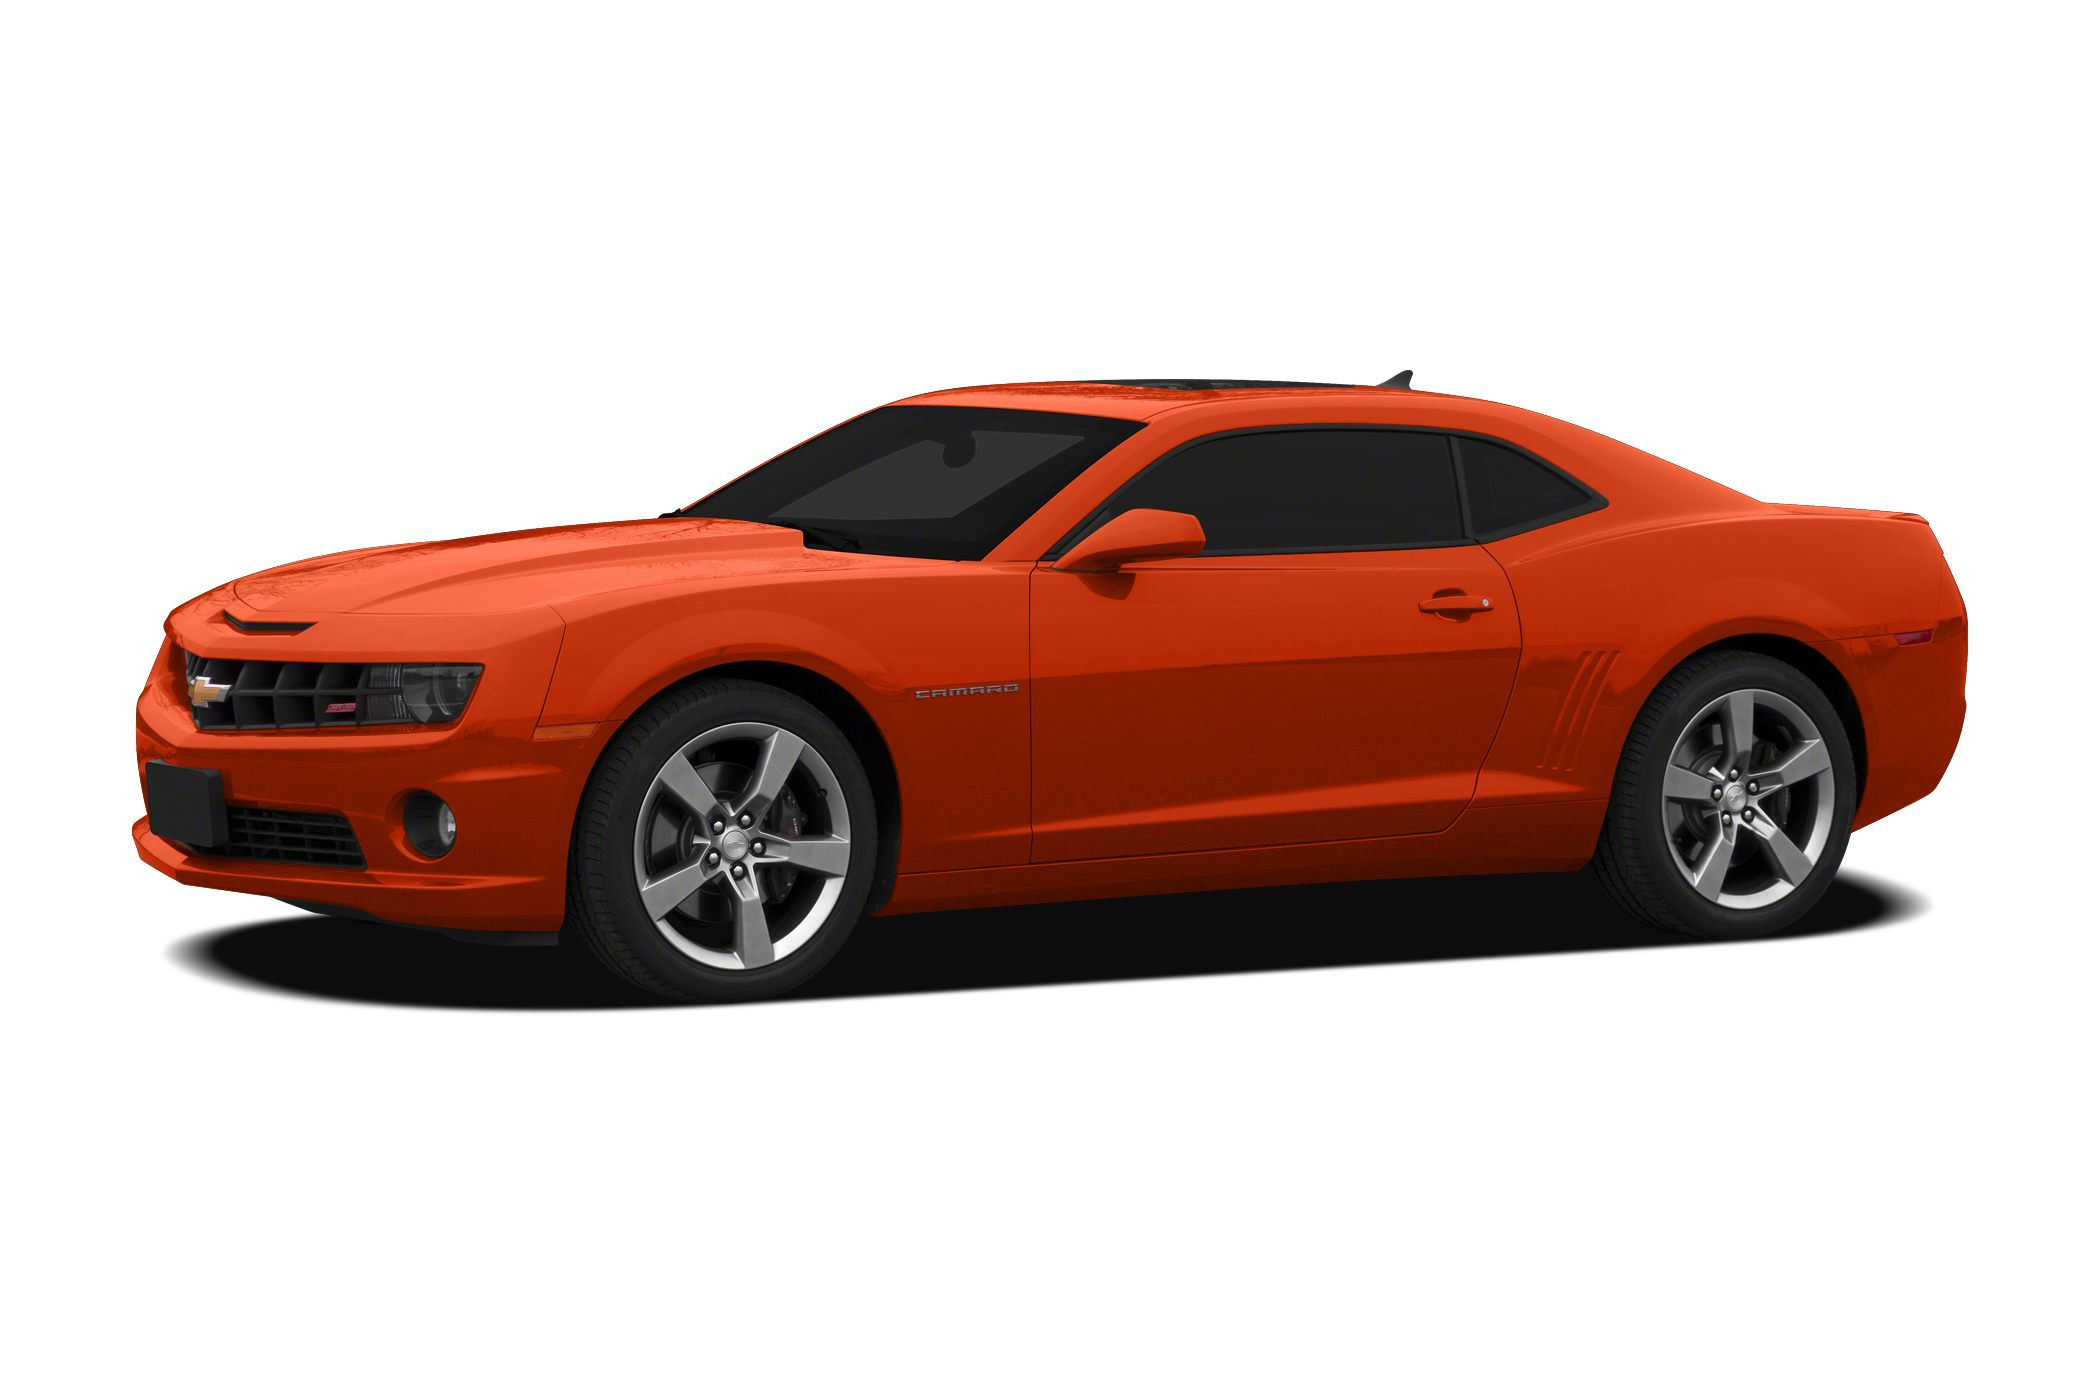 2010 Chevrolet Camaro 2SS Coupe for sale in Connellsville for $24,988 with 25,861 miles